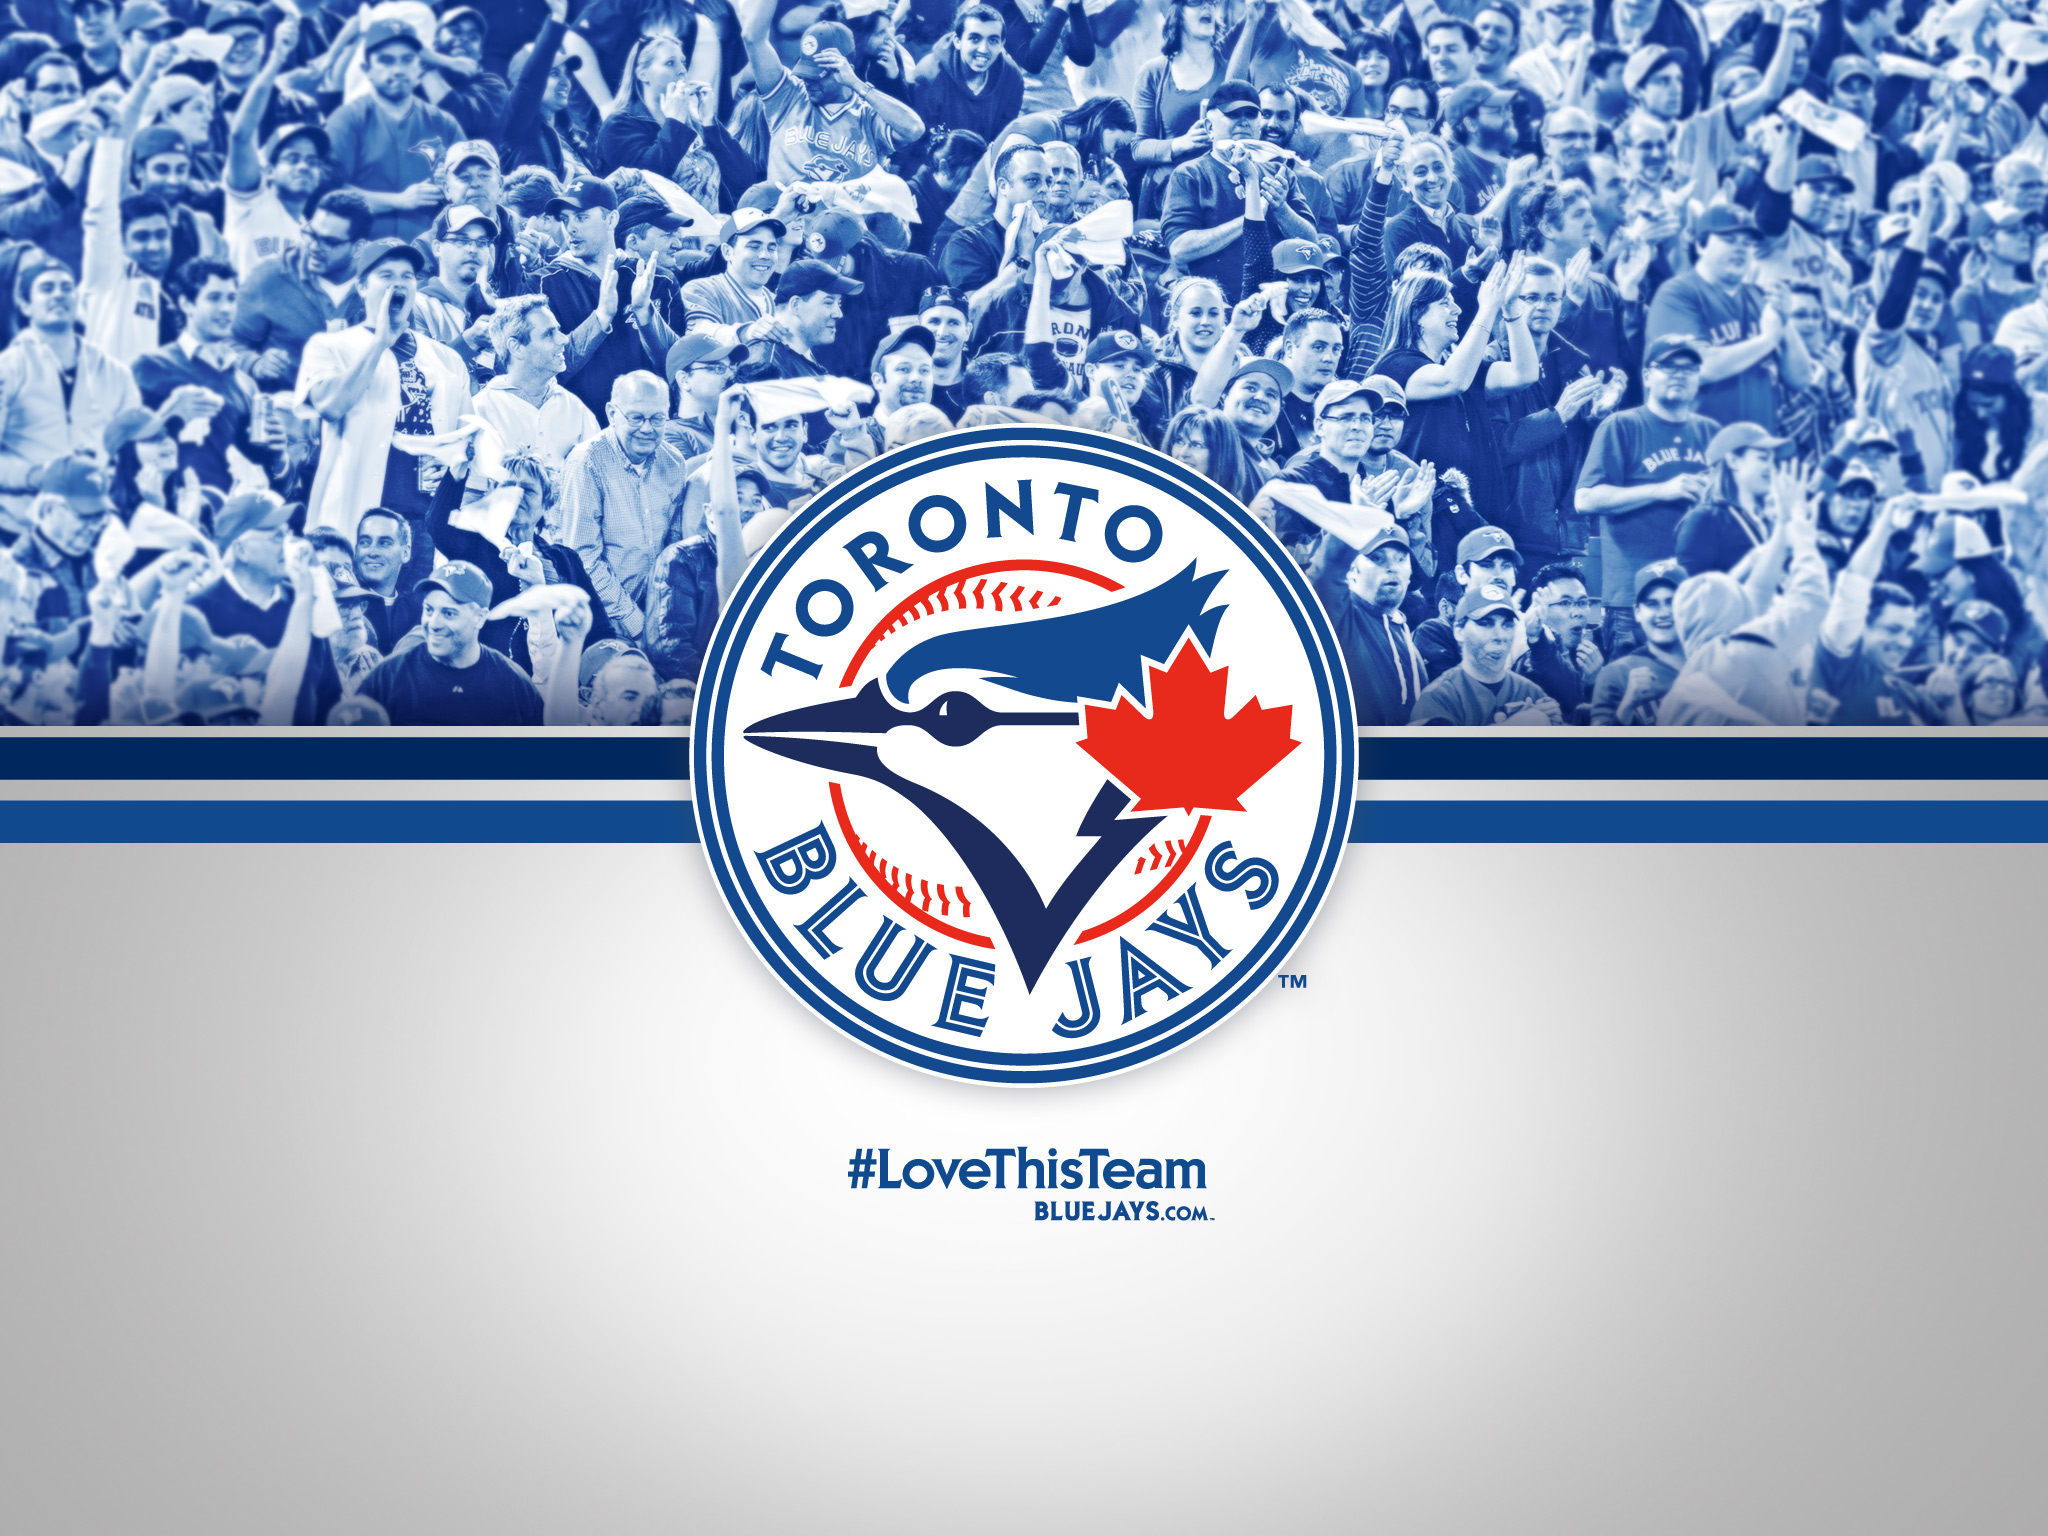 new toronto blue jays logo wallpaper pictures filesize 1024x1024 55k 2048x1536